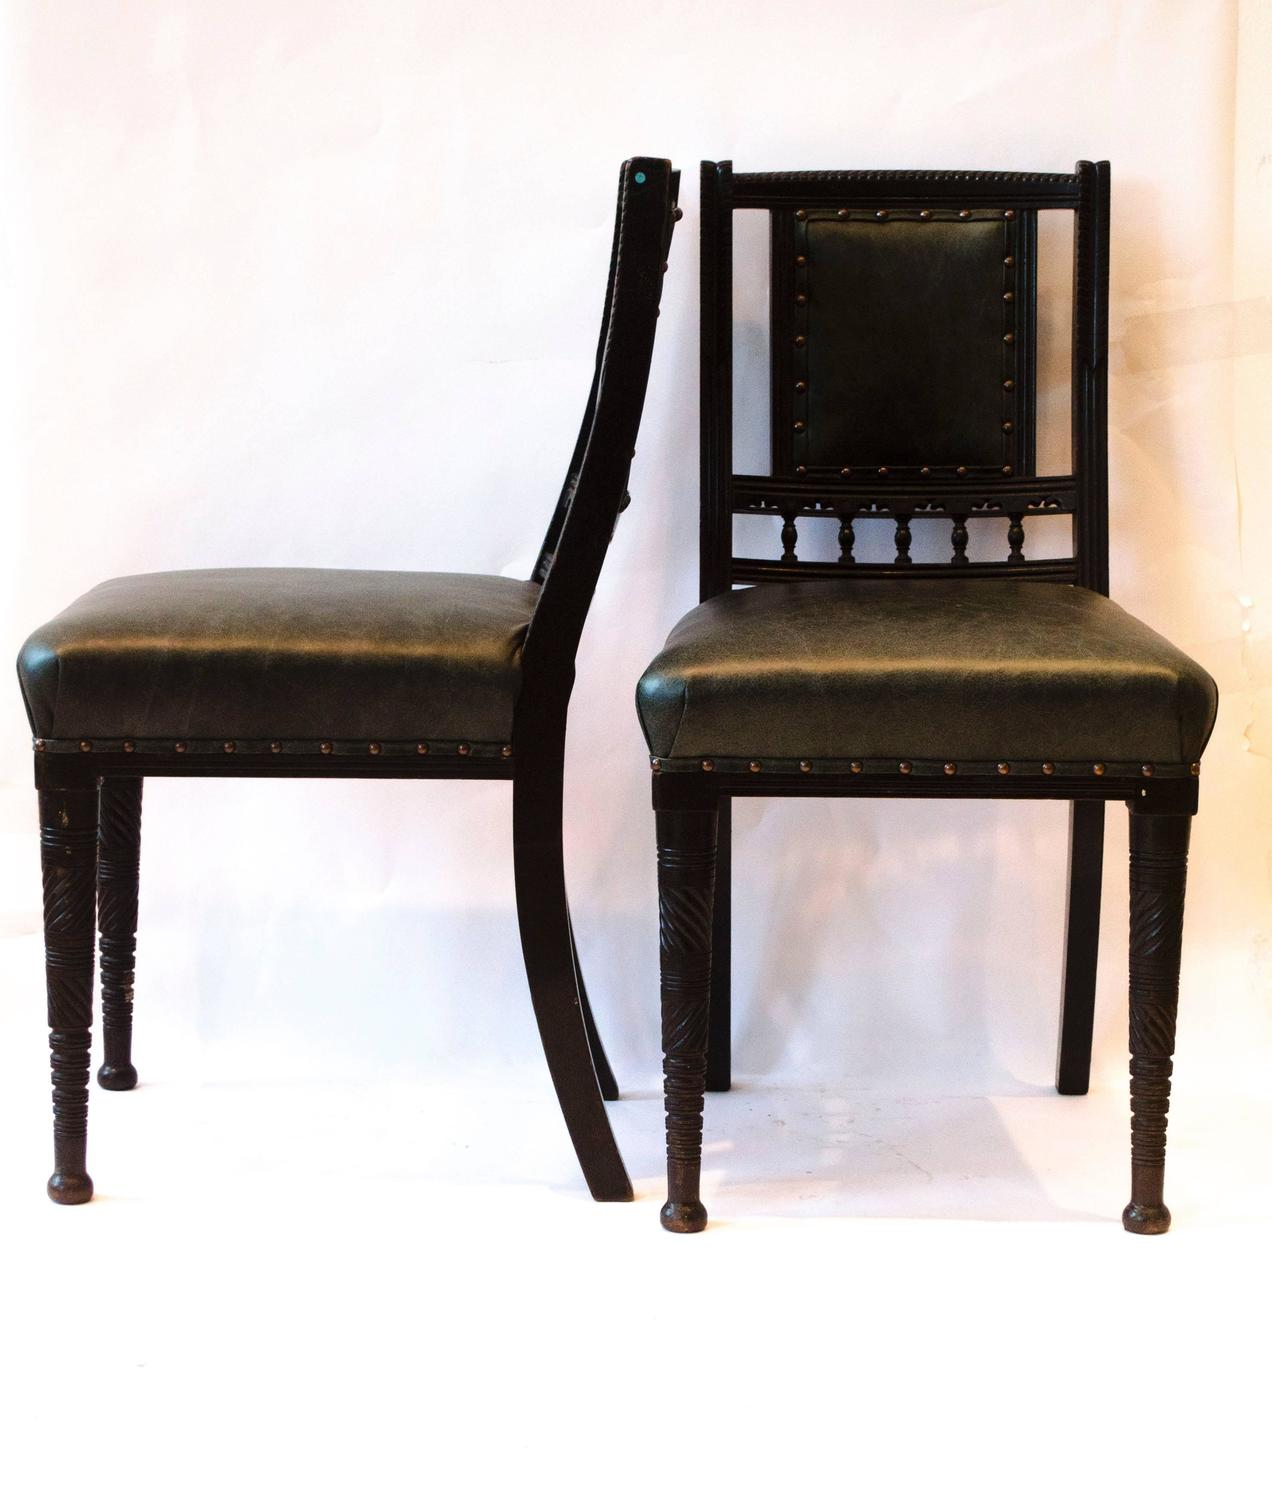 Four arts and crafts ebonised dining chairs by b talbert for sale at 1stdibs - Arts and crafts dining room furniture ...